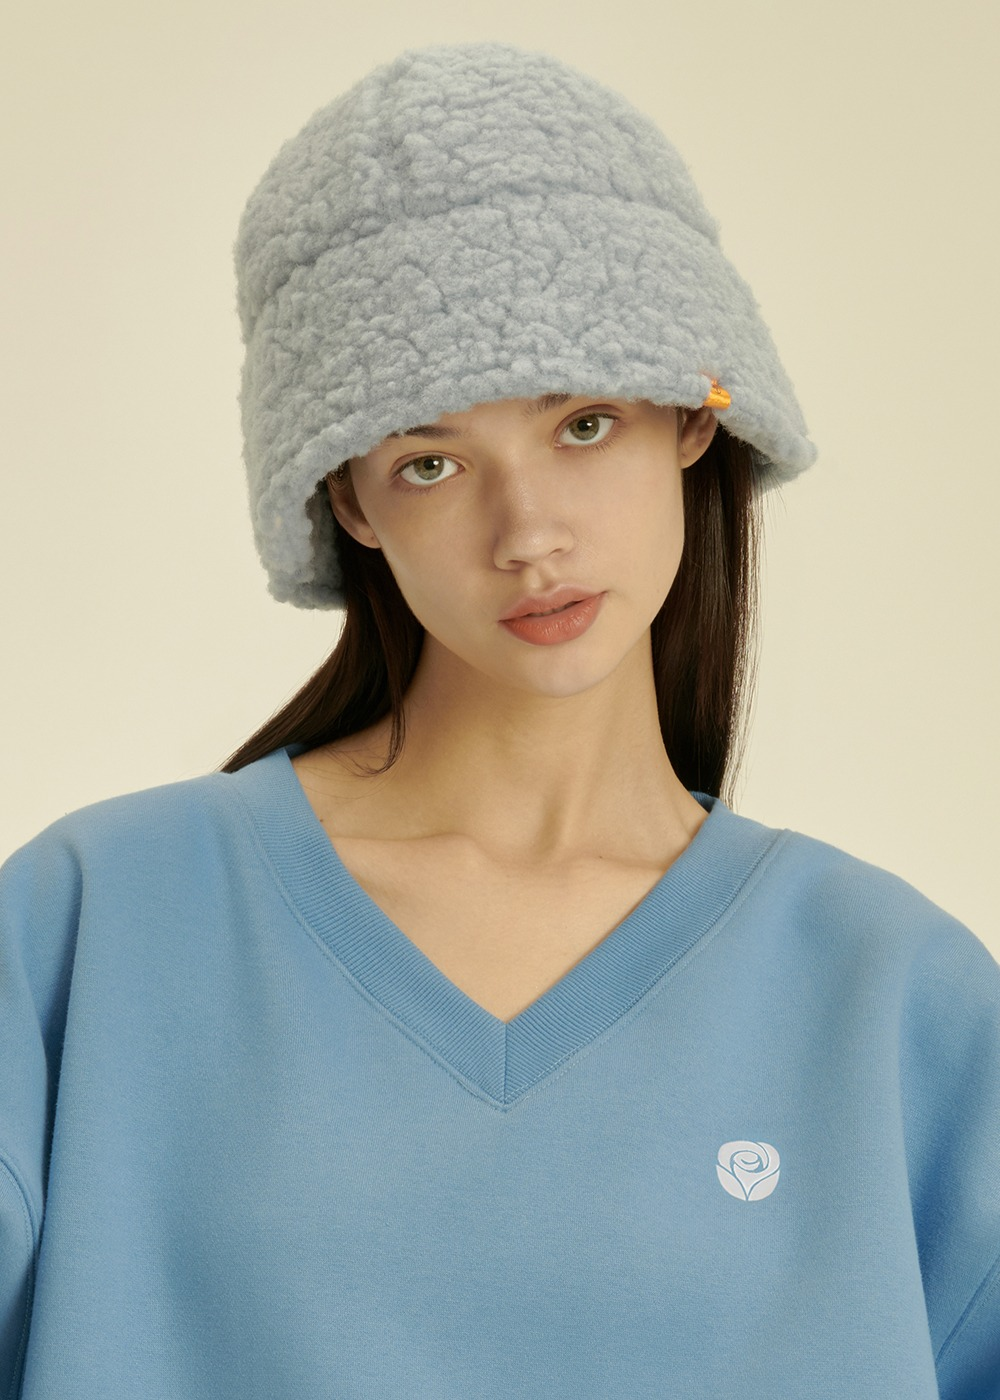 Fleece Bucket Hat [SKY BLUE]Fleece Bucket Hat [SKY BLUE]자체브랜드